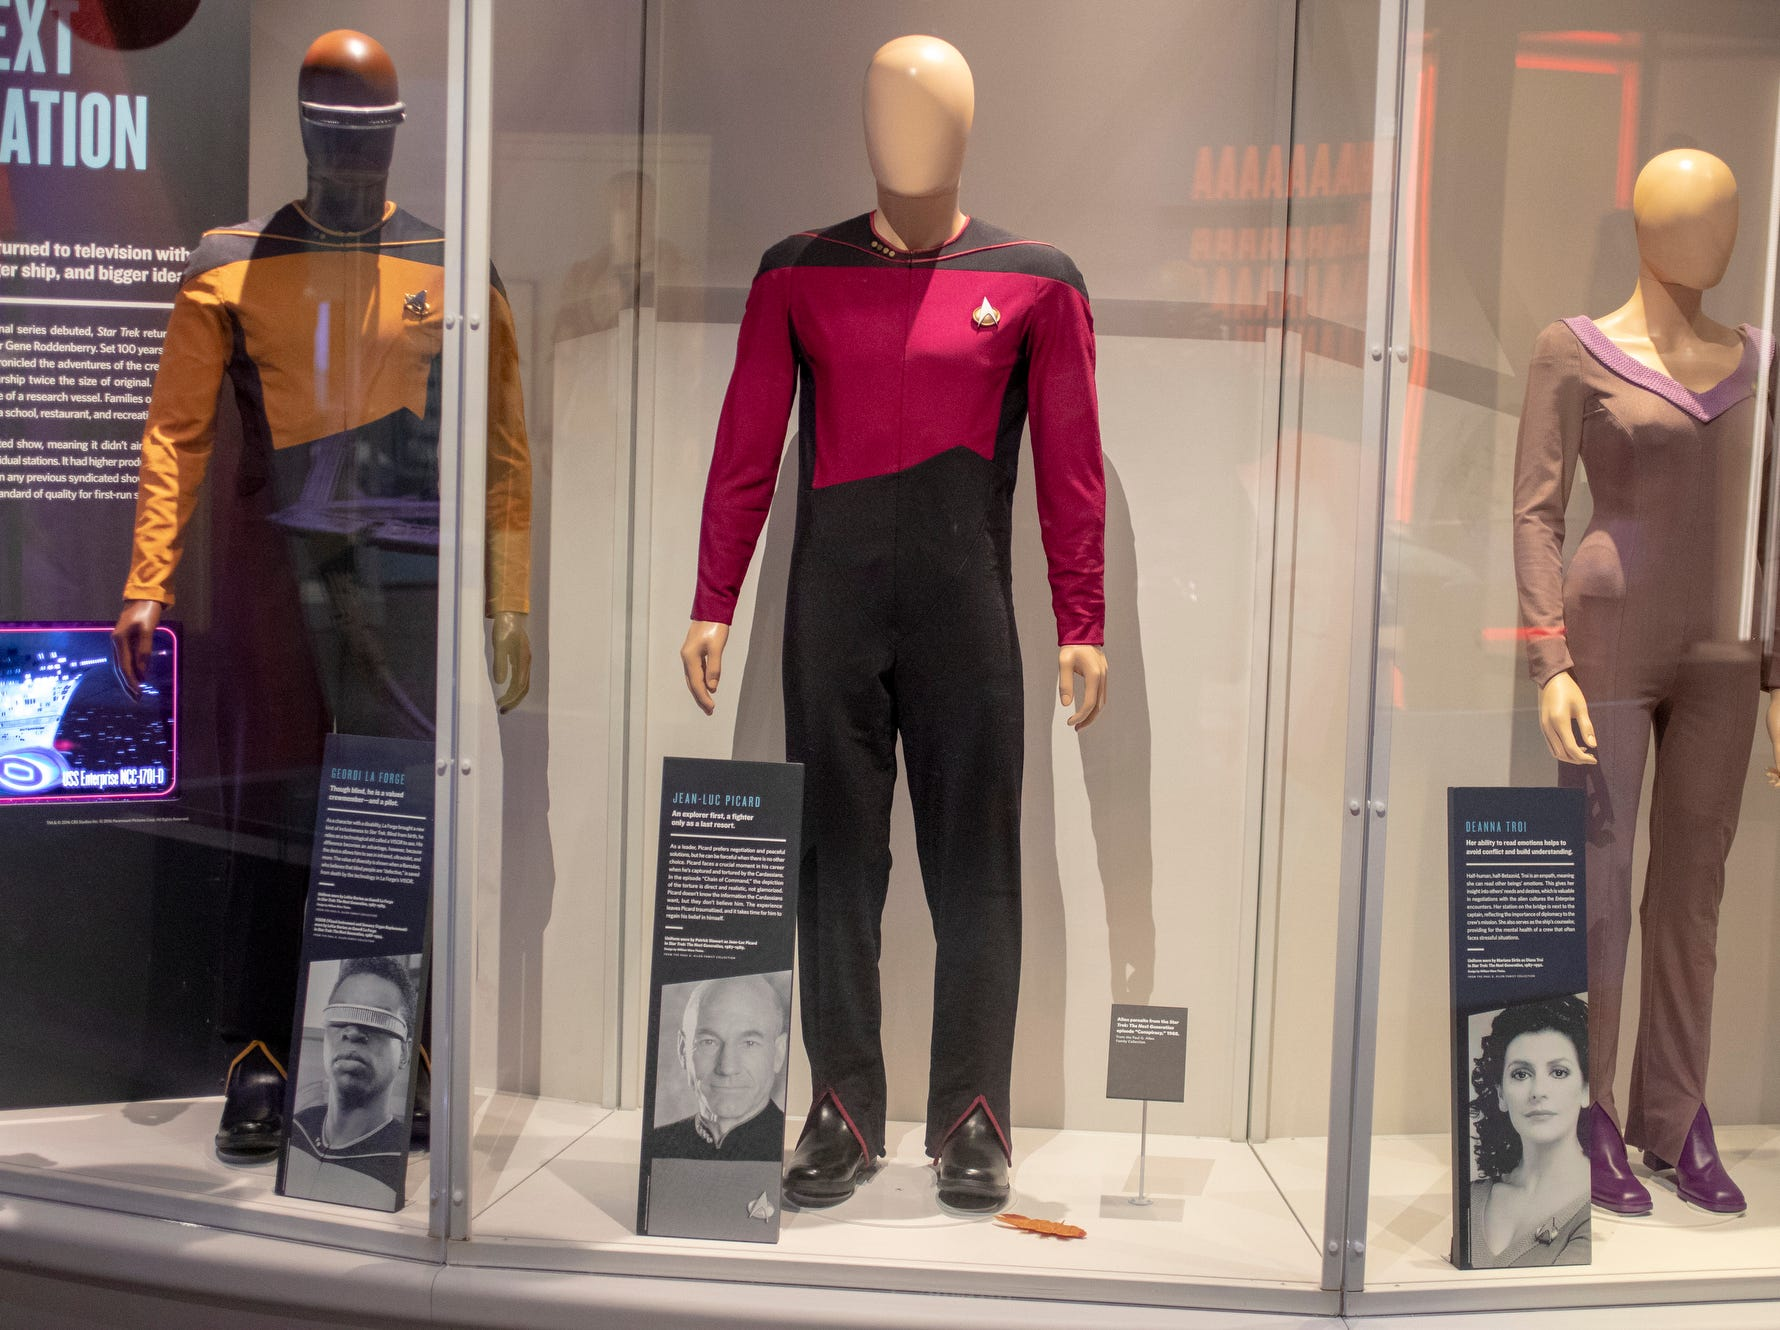 """Uniforms worn by prominent """"Star Trek: The Next Generation"""" characters are seen at The Children's Museum of Indianapolis, Wednesday, Jan. 23, 2019. The """"Star Trek: Exploring New Worlds"""" exhibit is made up of set pieces, ship models and outfits used during various Star Trek shows and movies and is on display at the museum from Feb. 2 through April 7, 2019."""